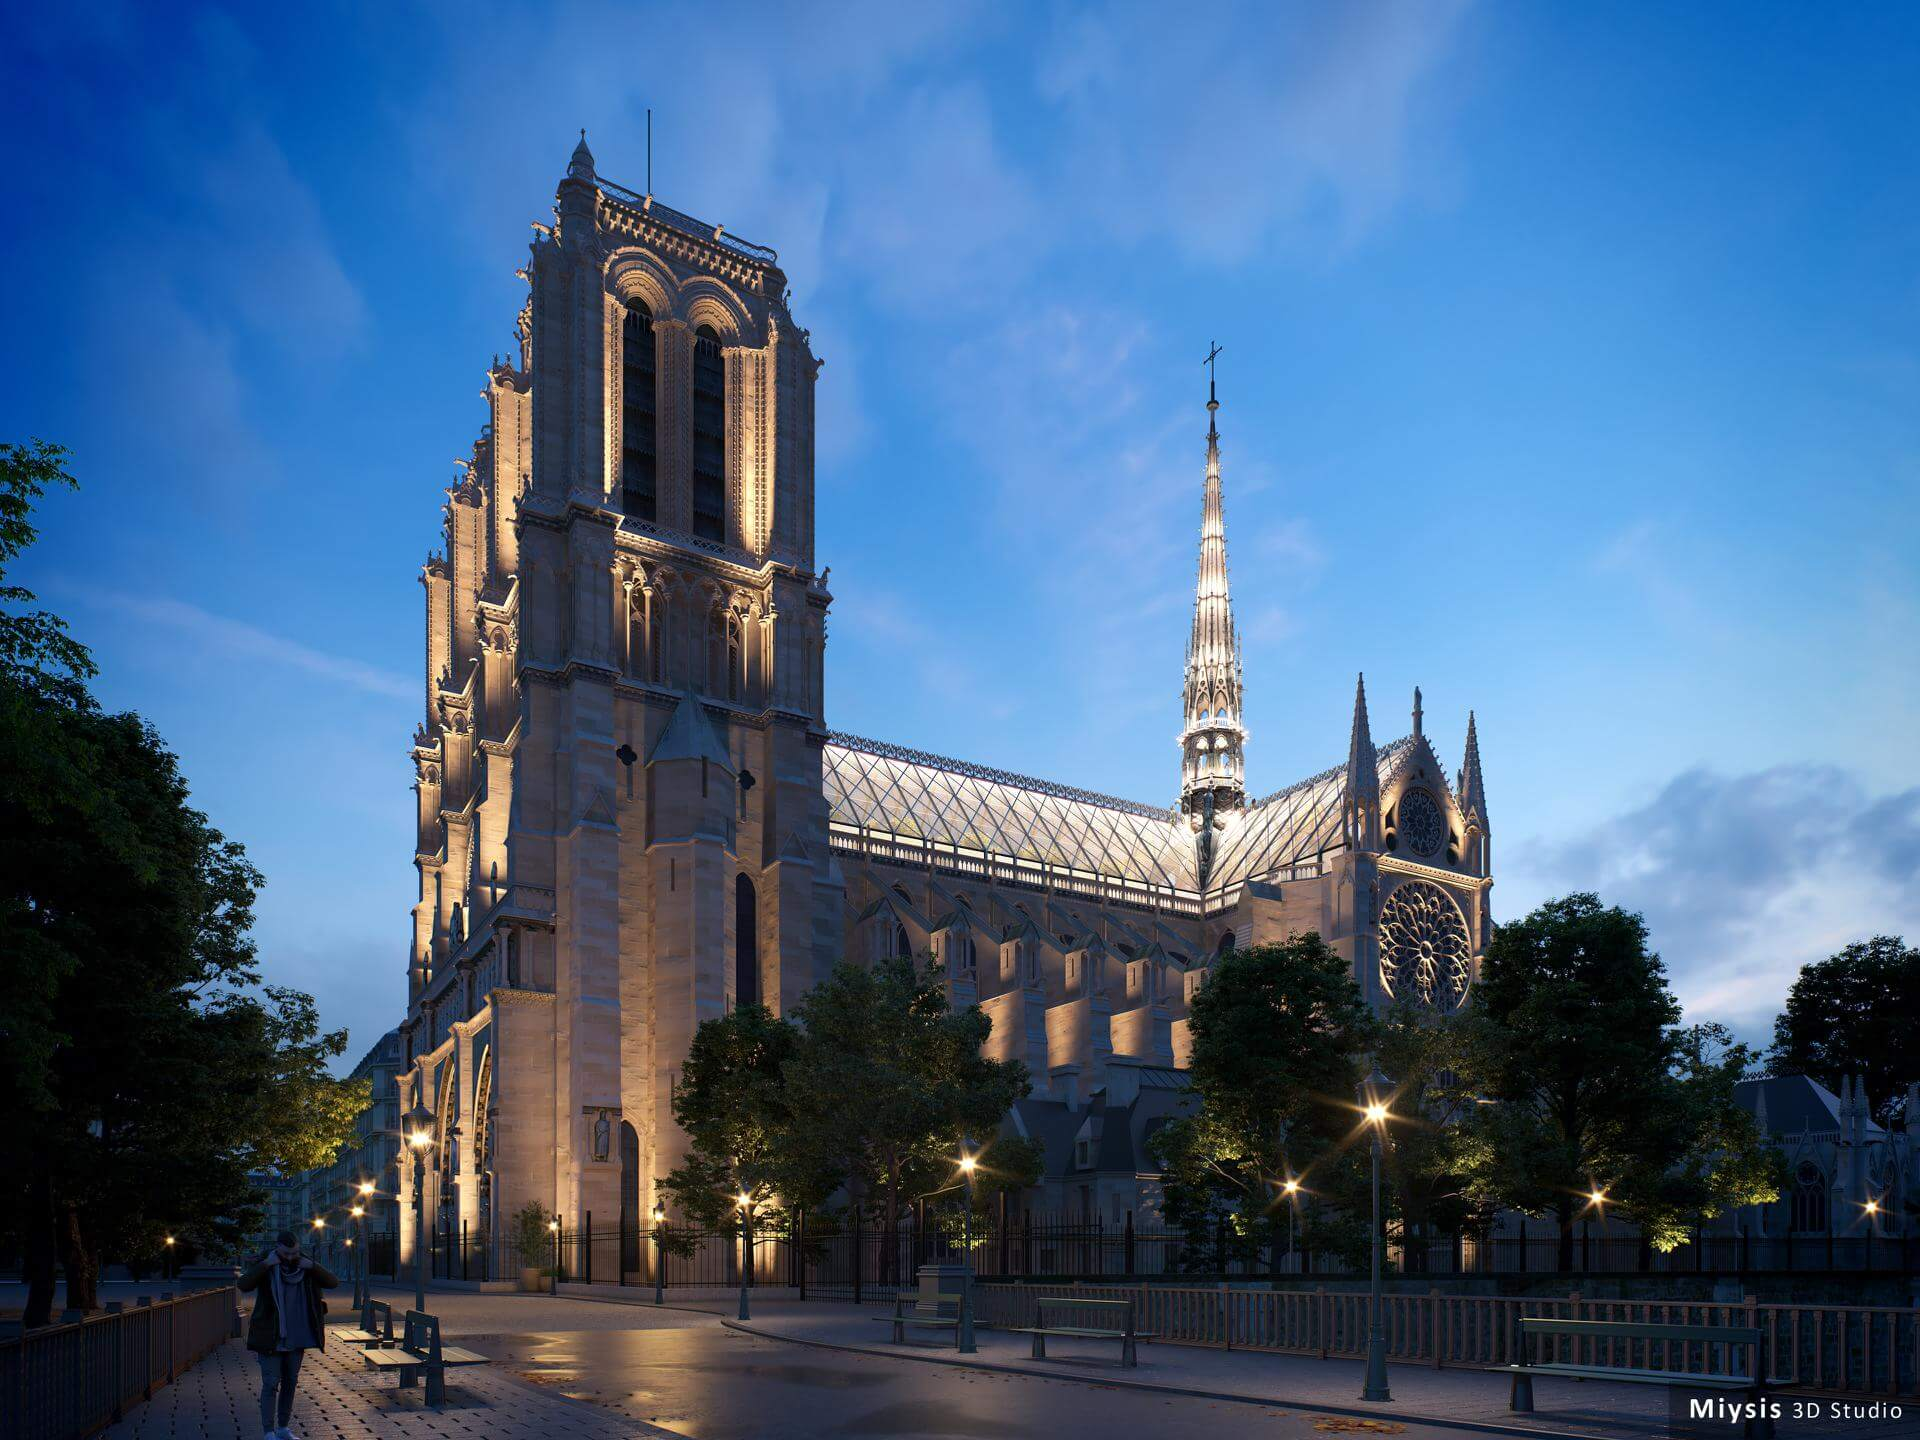 """Notre Dame de Paris night view"" render by Miysis 3D."